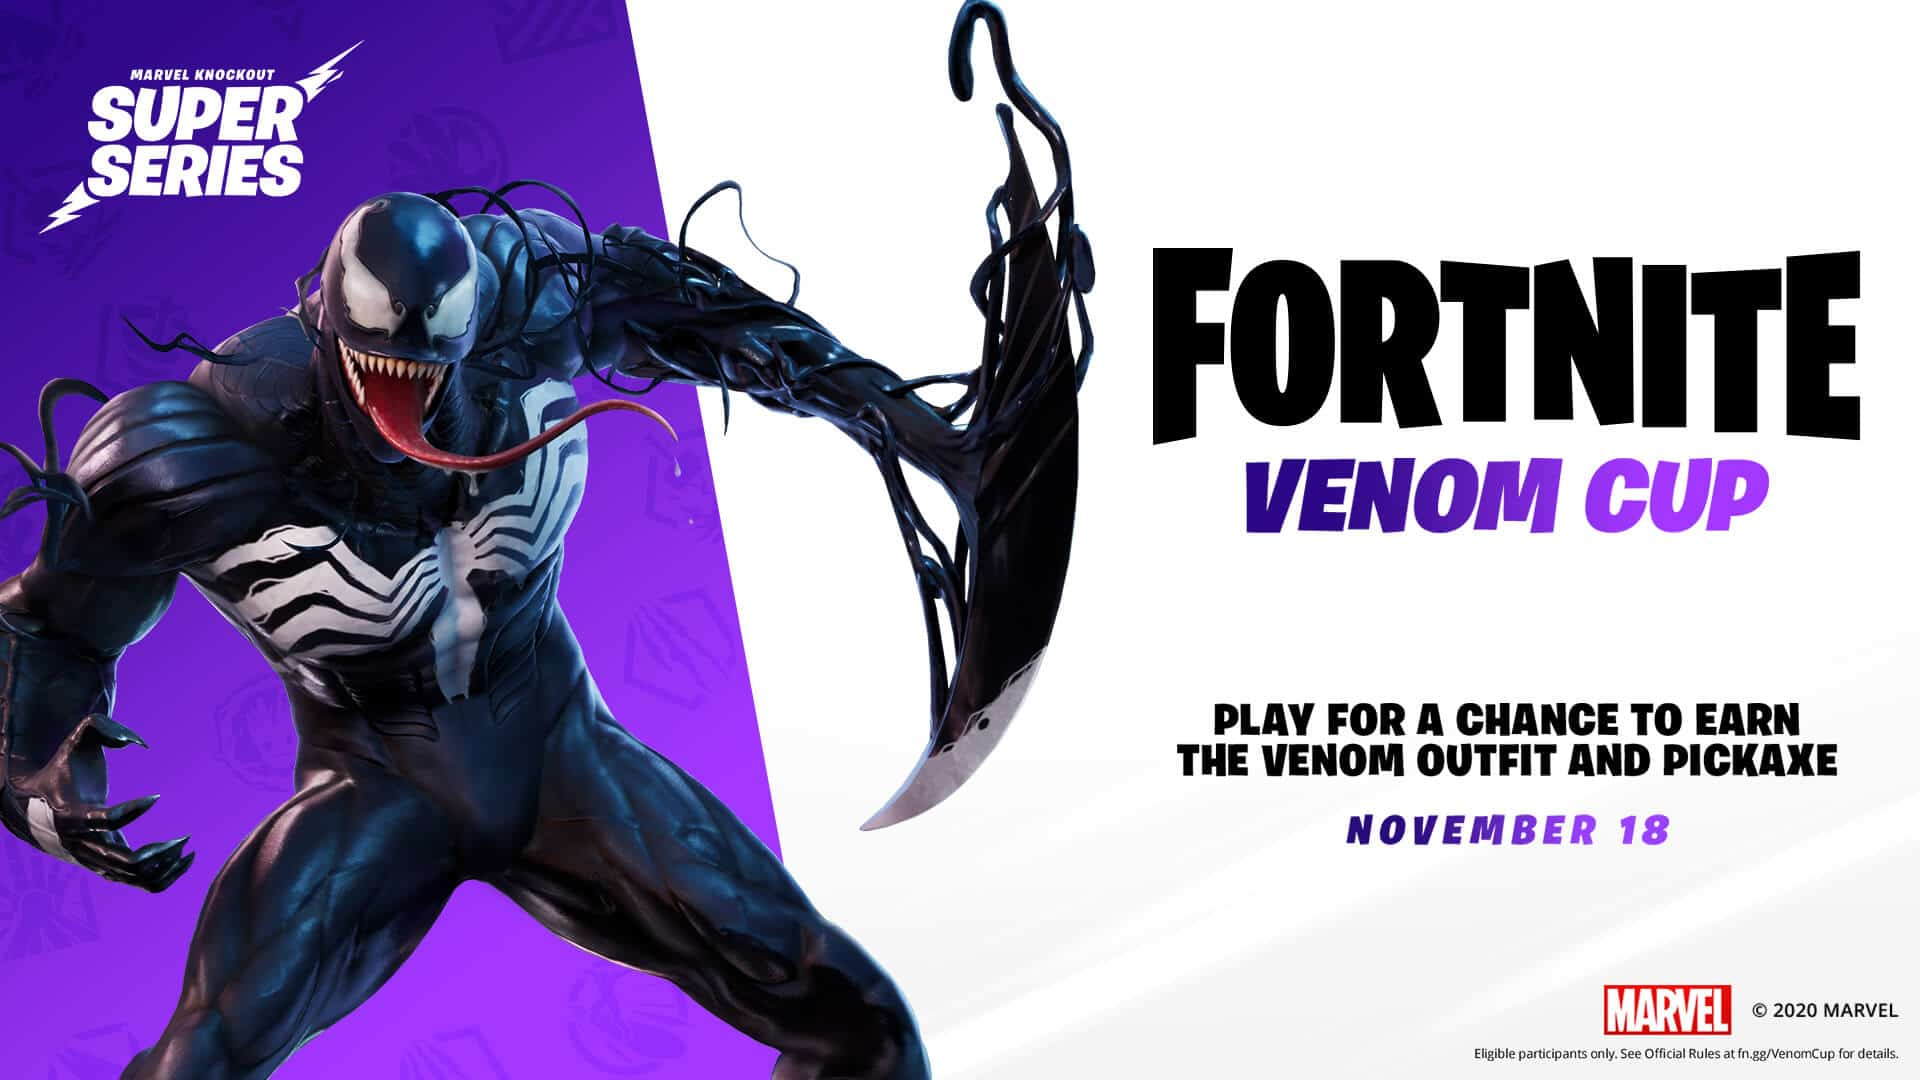 How to Get the Fornite Venom Skin for Free